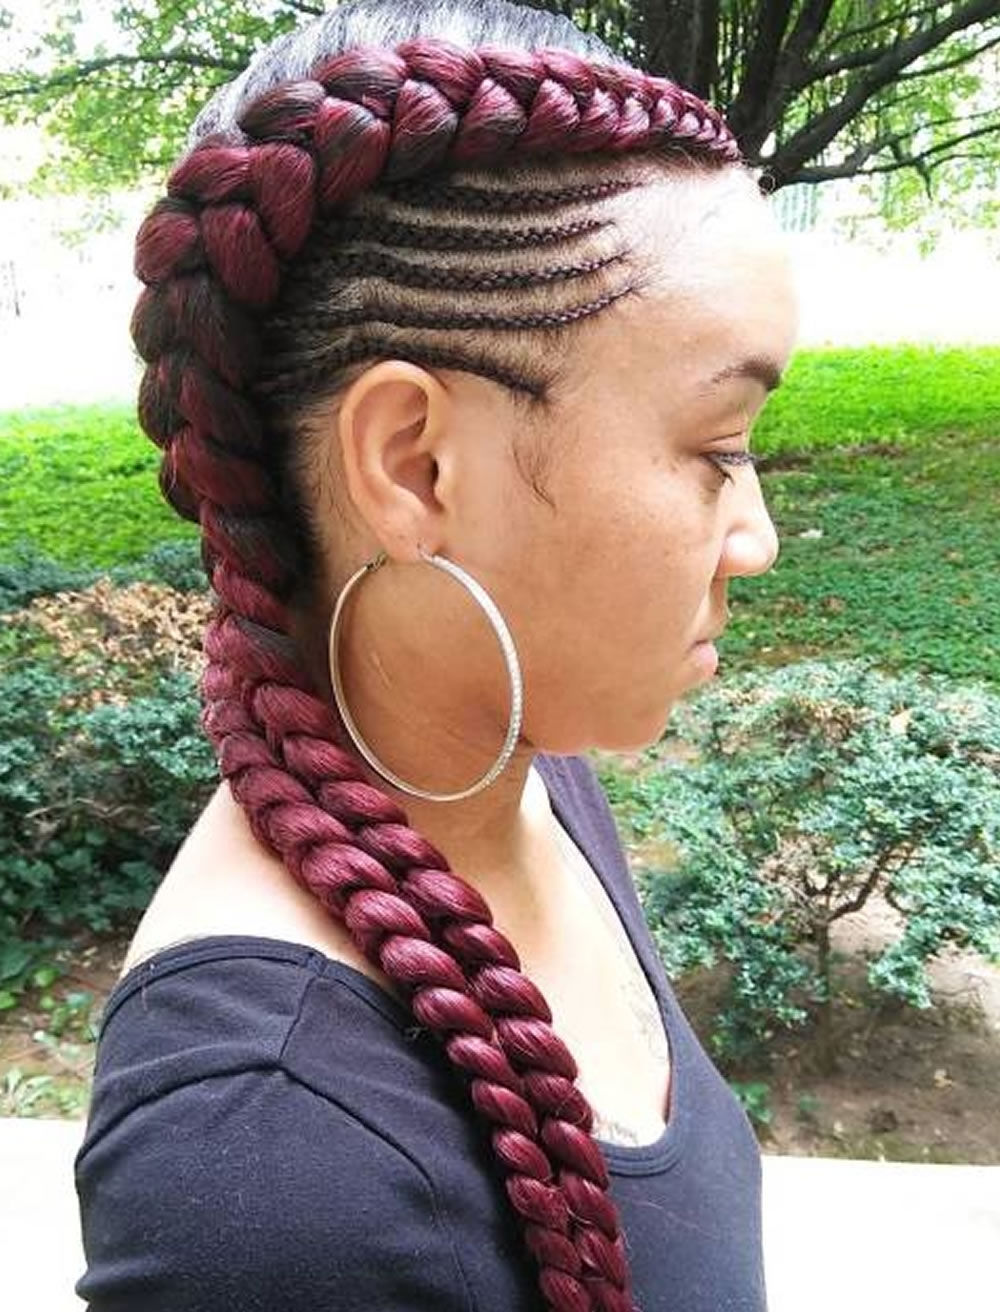 20 Best African American Braided Hairstyles For Women 2017 2018 With Regard To Current African American Braided Hairstyles (View 6 of 15)